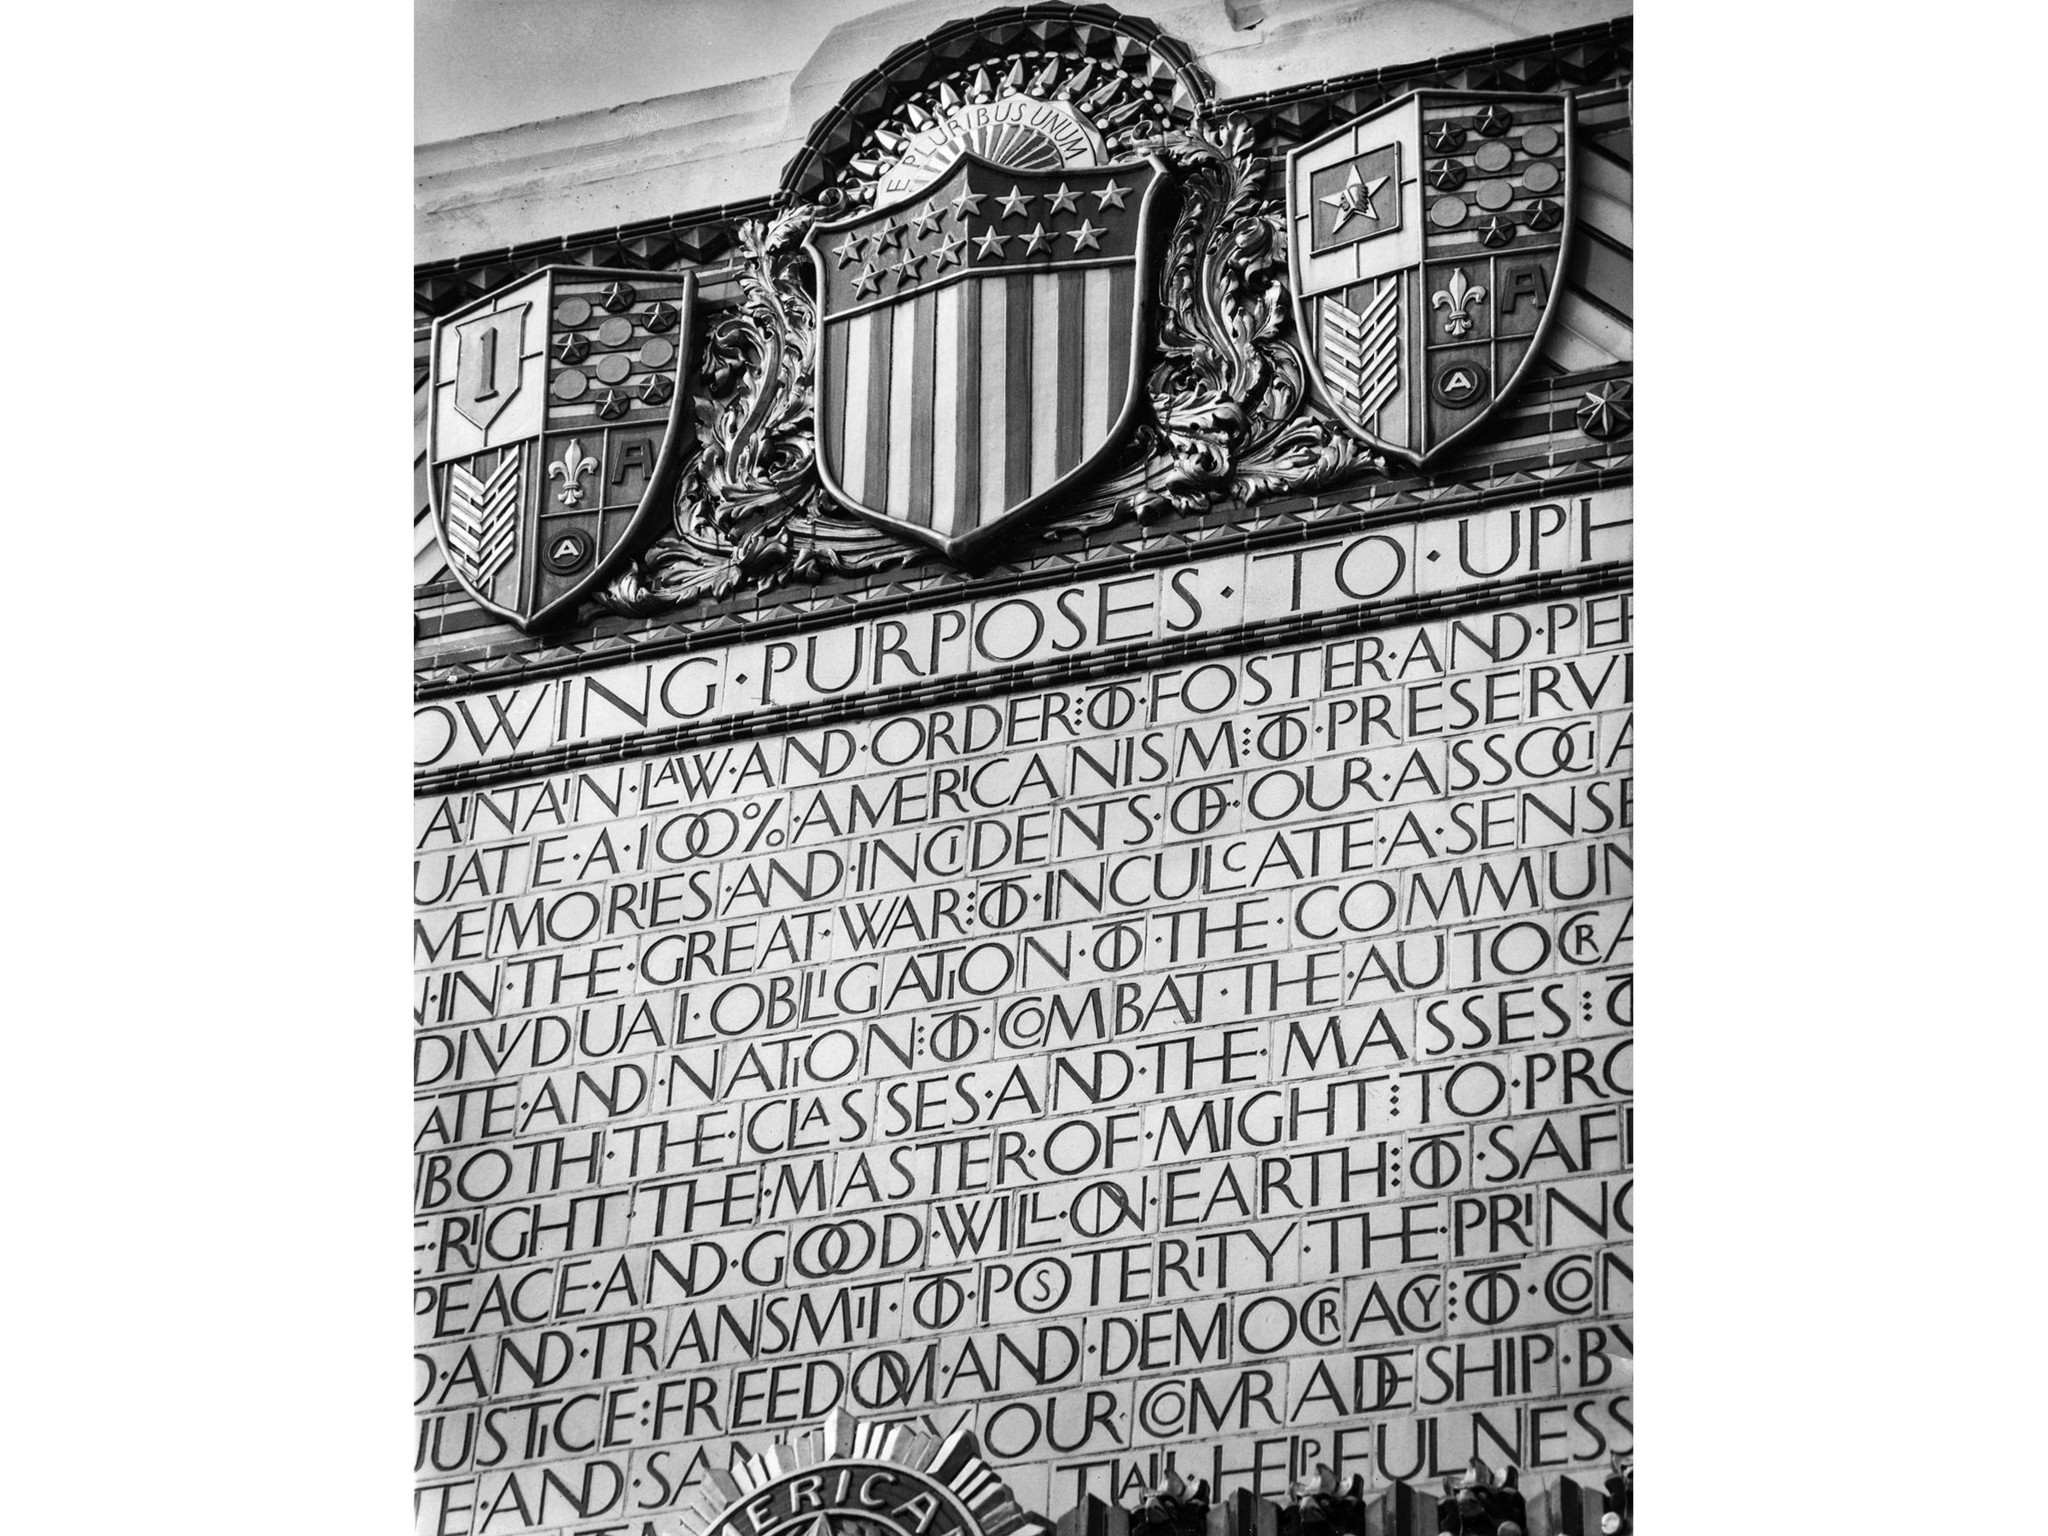 Nov. 28, 1955: Ornate entrance to American Legion Post 43 in Hollywood. Photo used in the Know Your